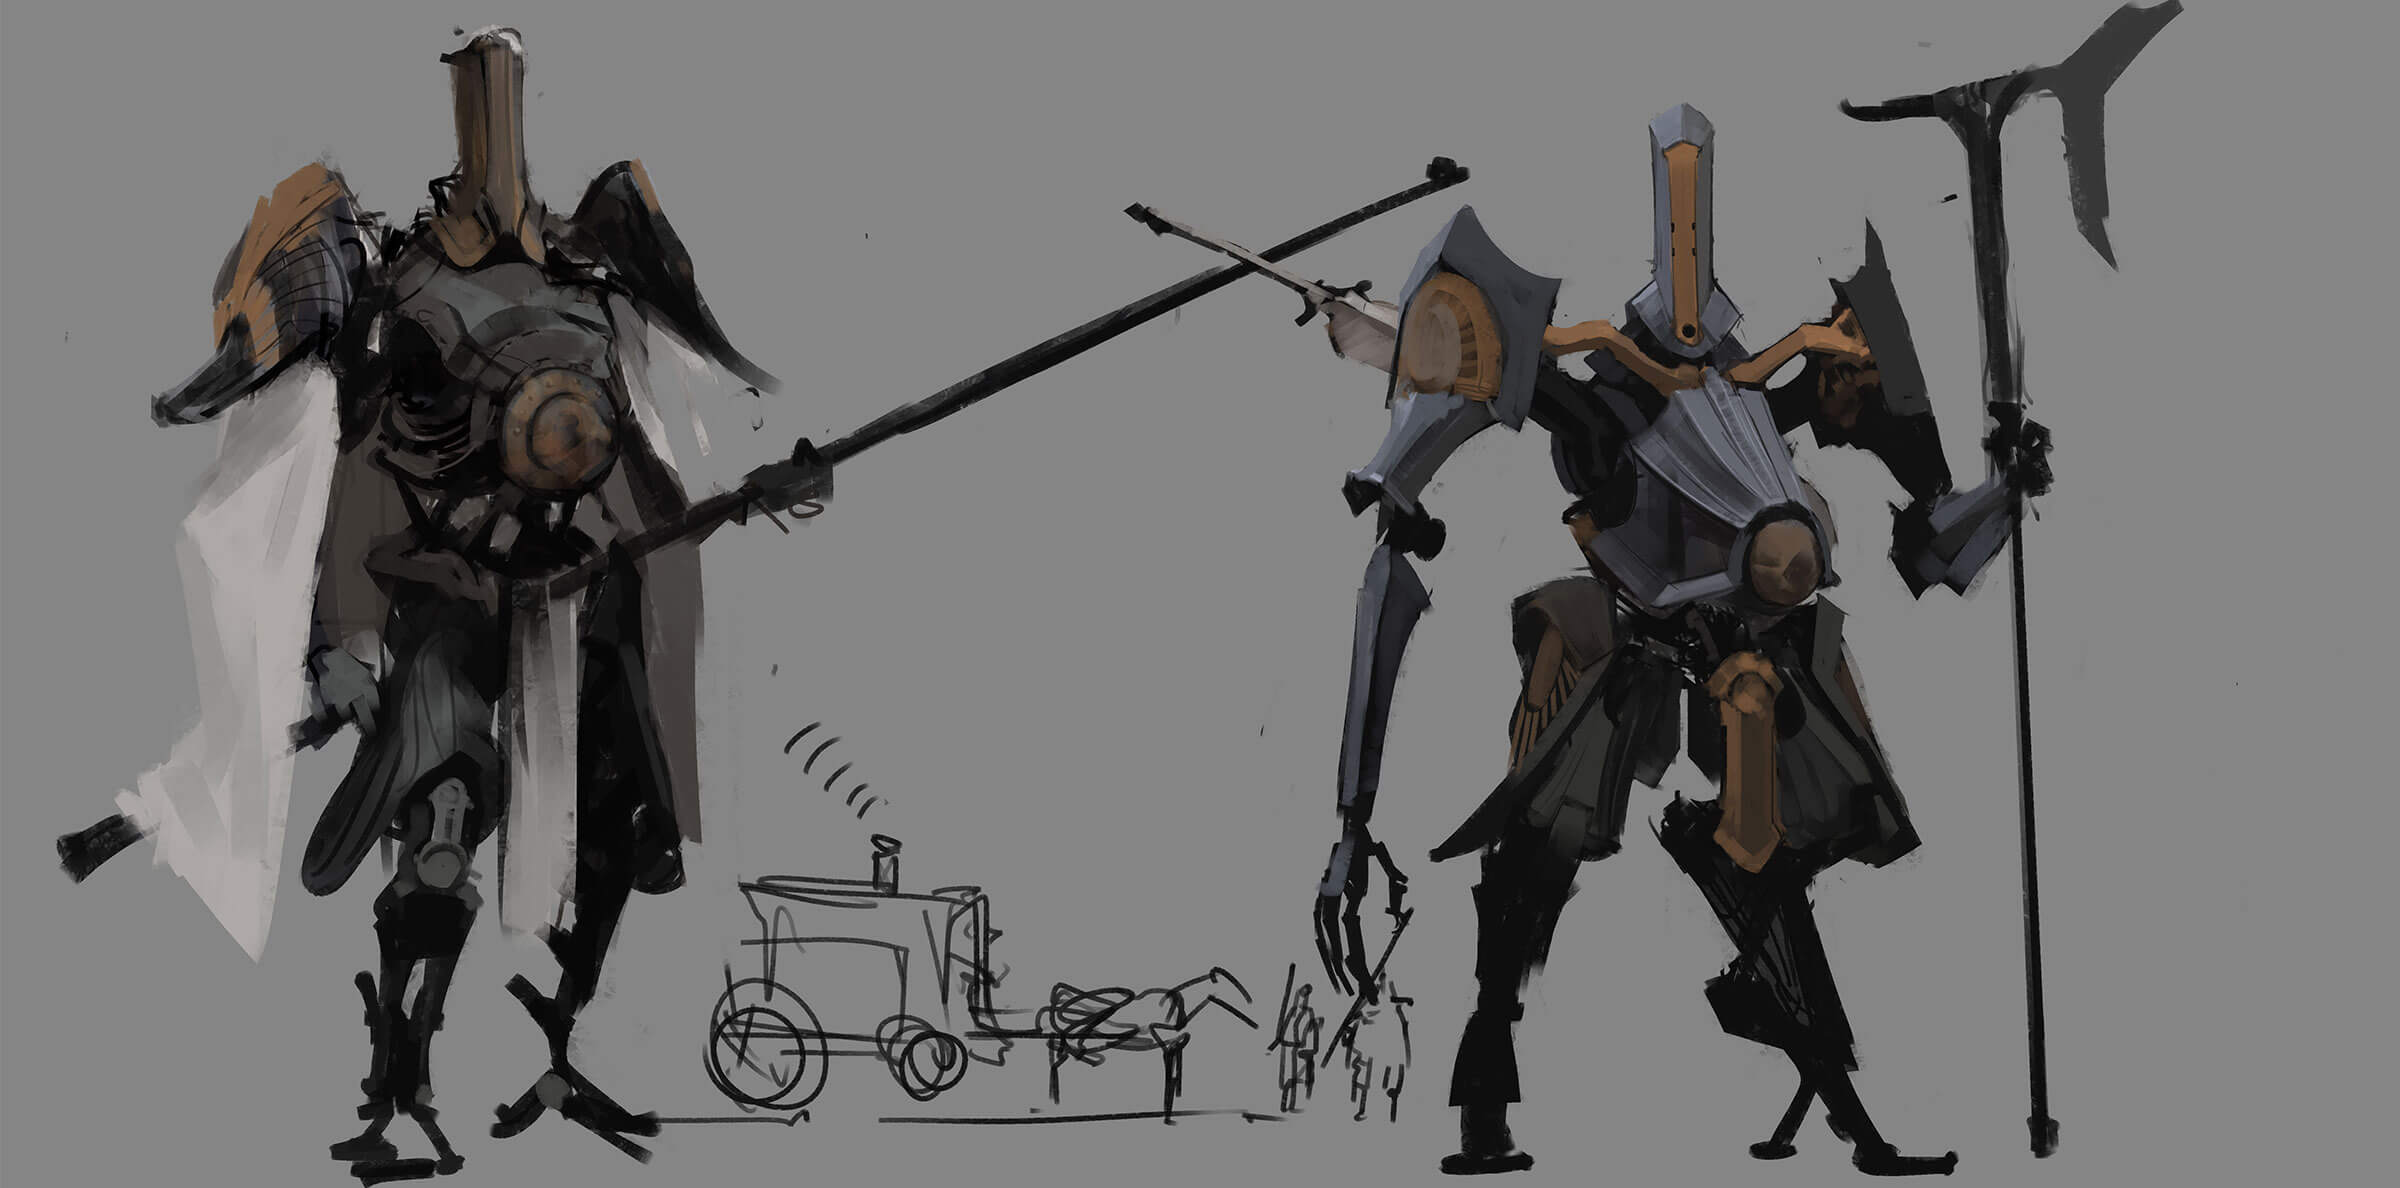 Sketches of large robots wielding weapons